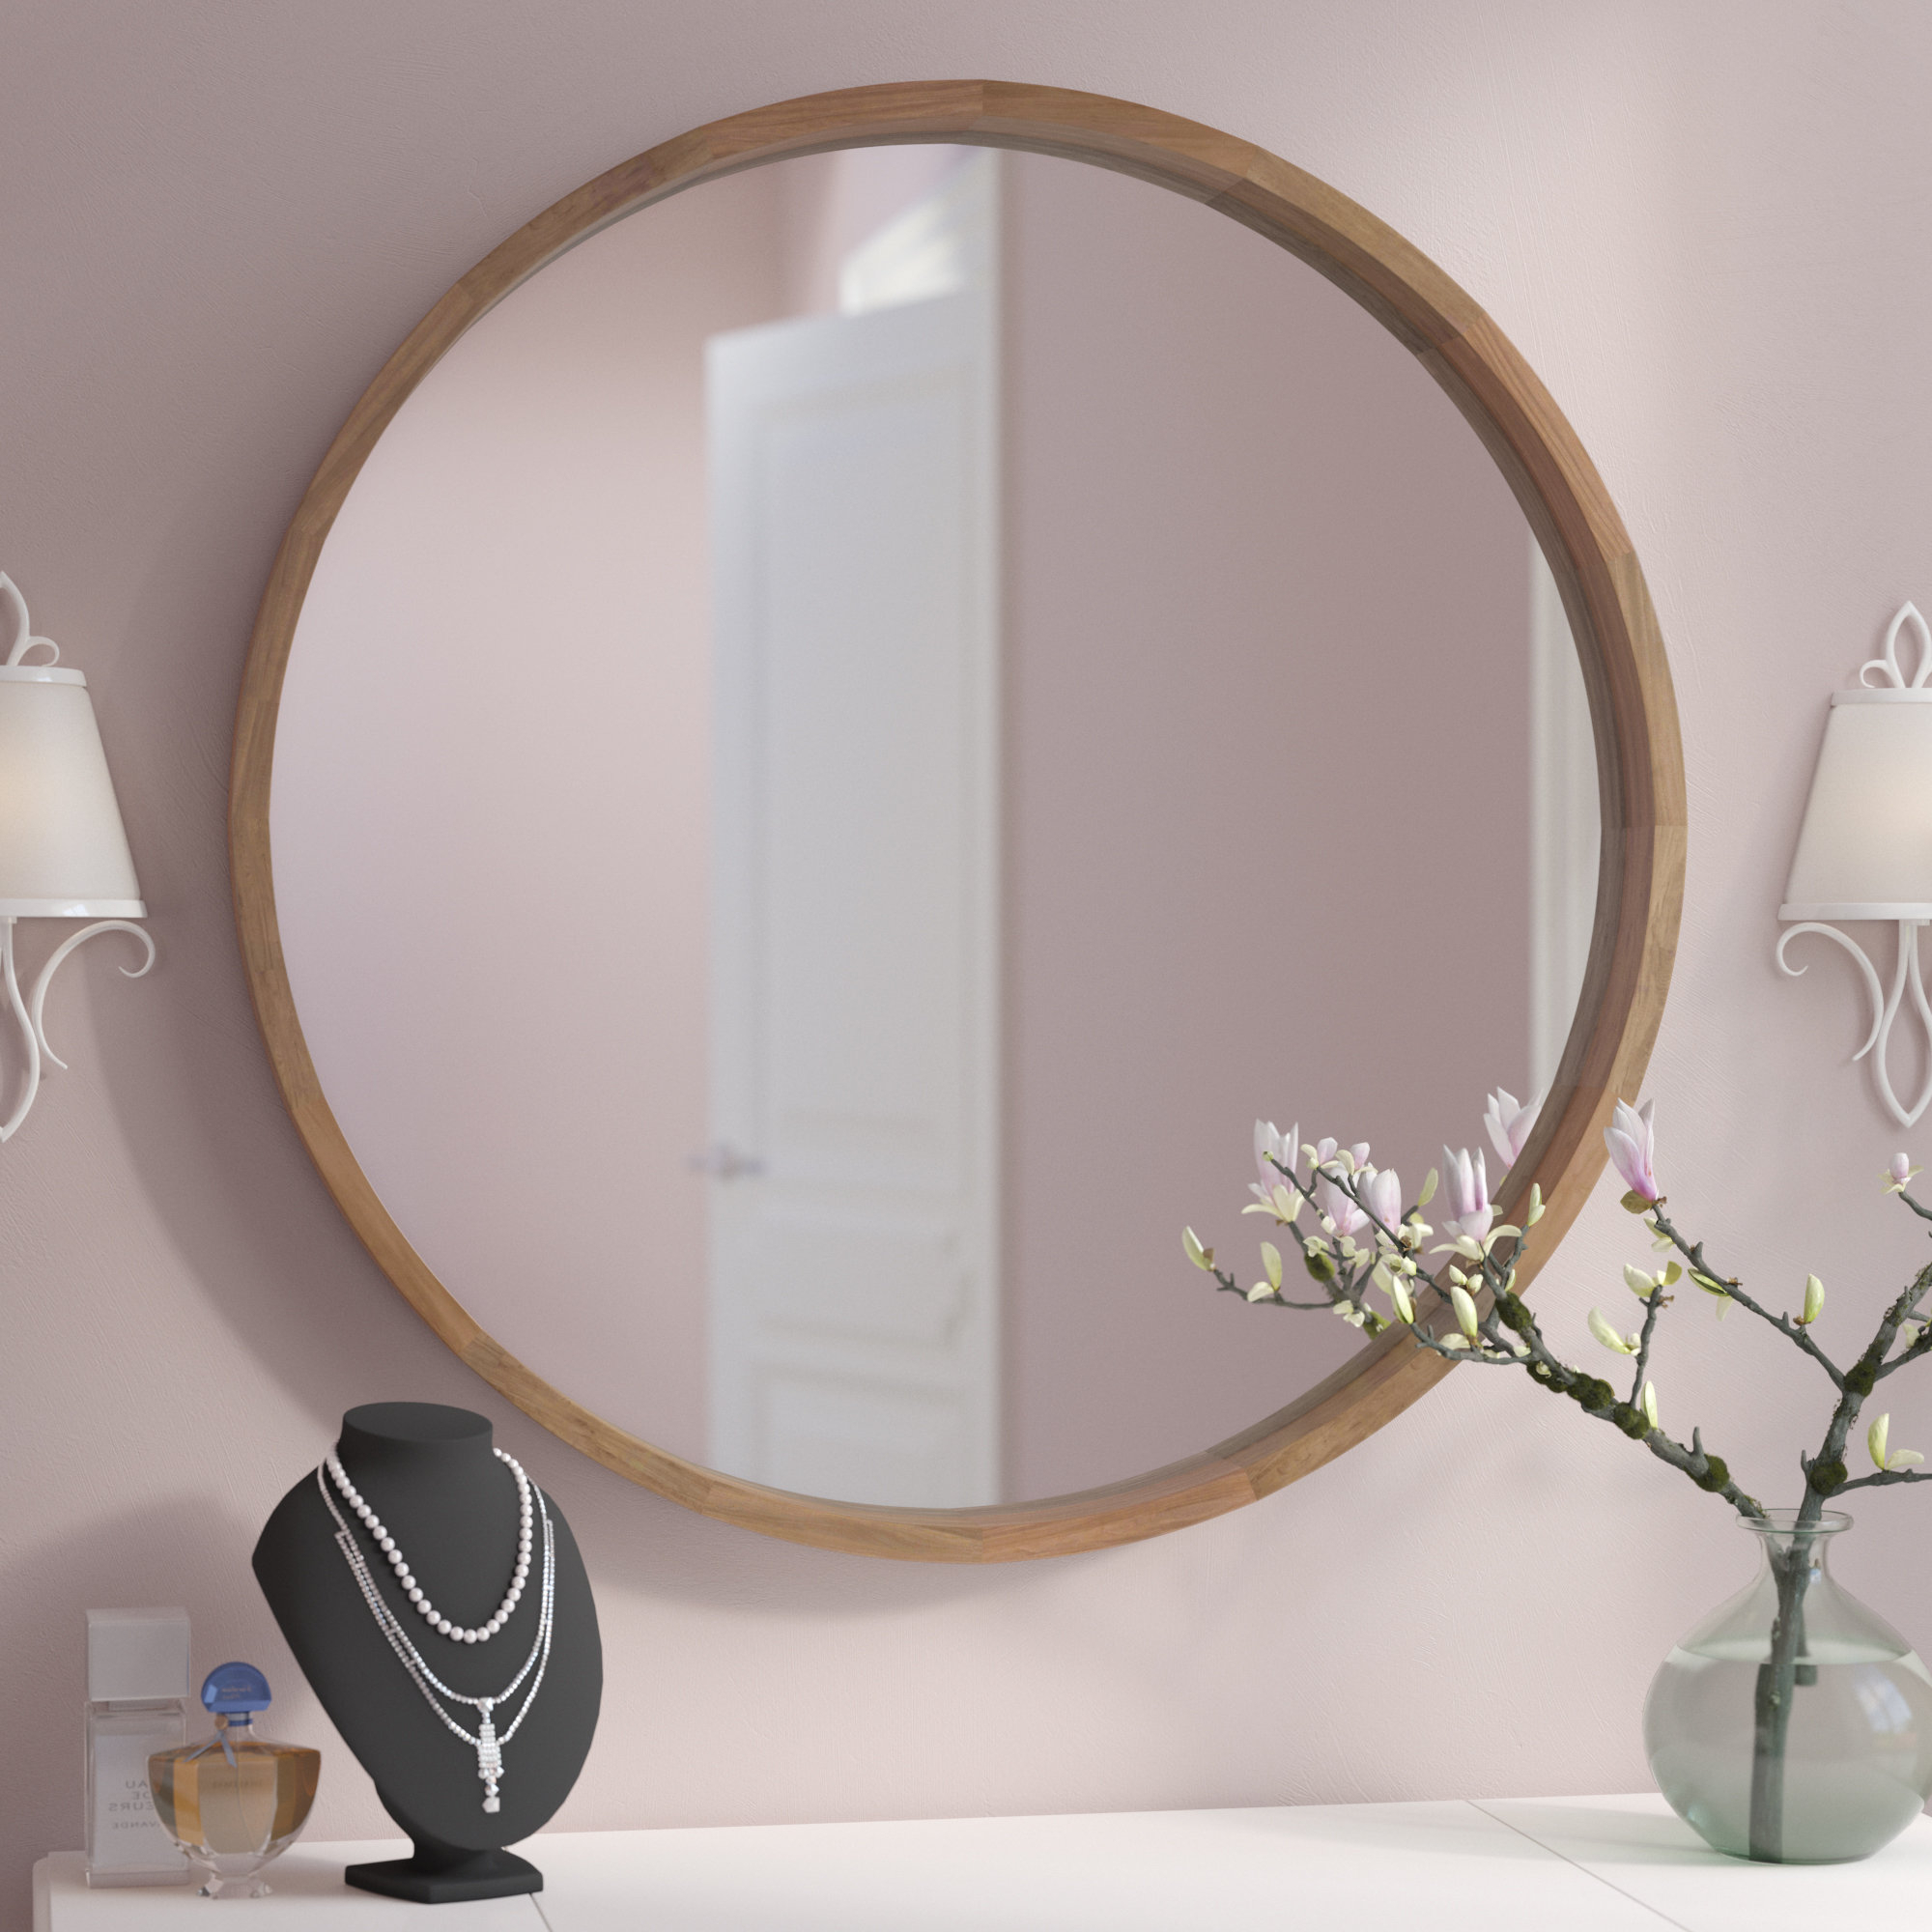 Loftis Modern & Contemporary Accent Wall Mirror Regarding Most Current Matthias Round Accent Mirrors (View 14 of 20)